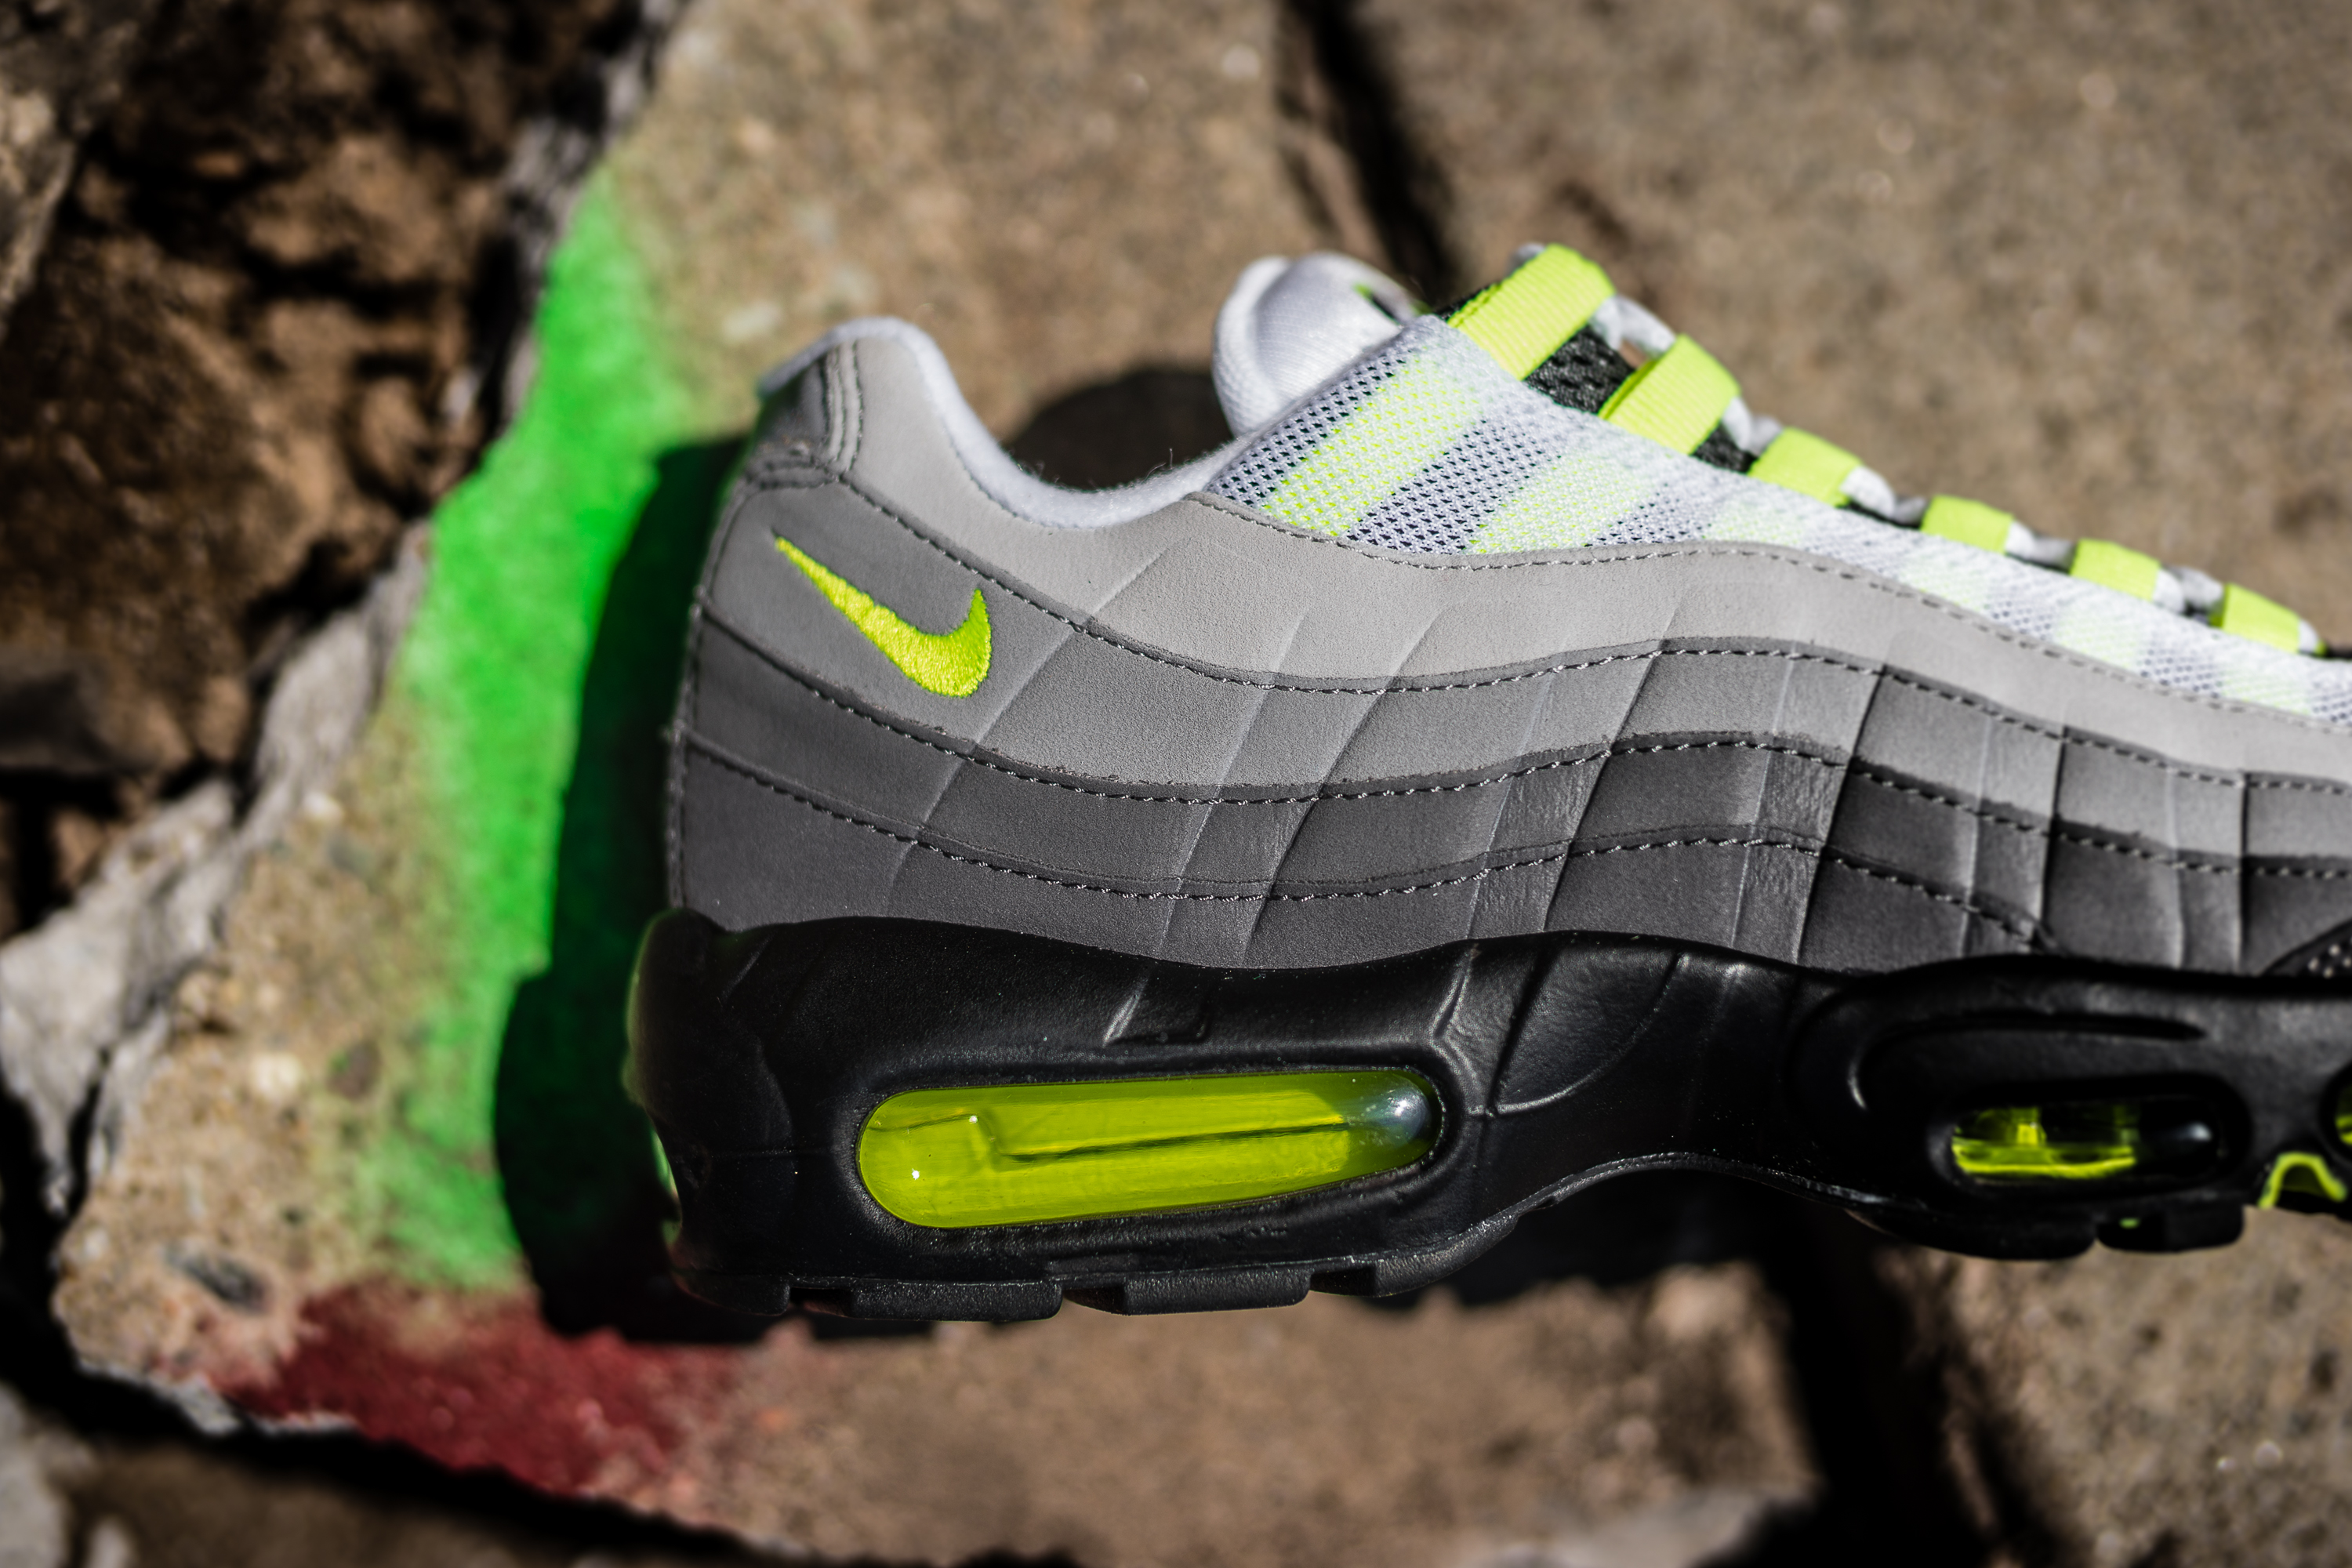 nike air max 95 og neon launching 7 25 packer. Black Bedroom Furniture Sets. Home Design Ideas